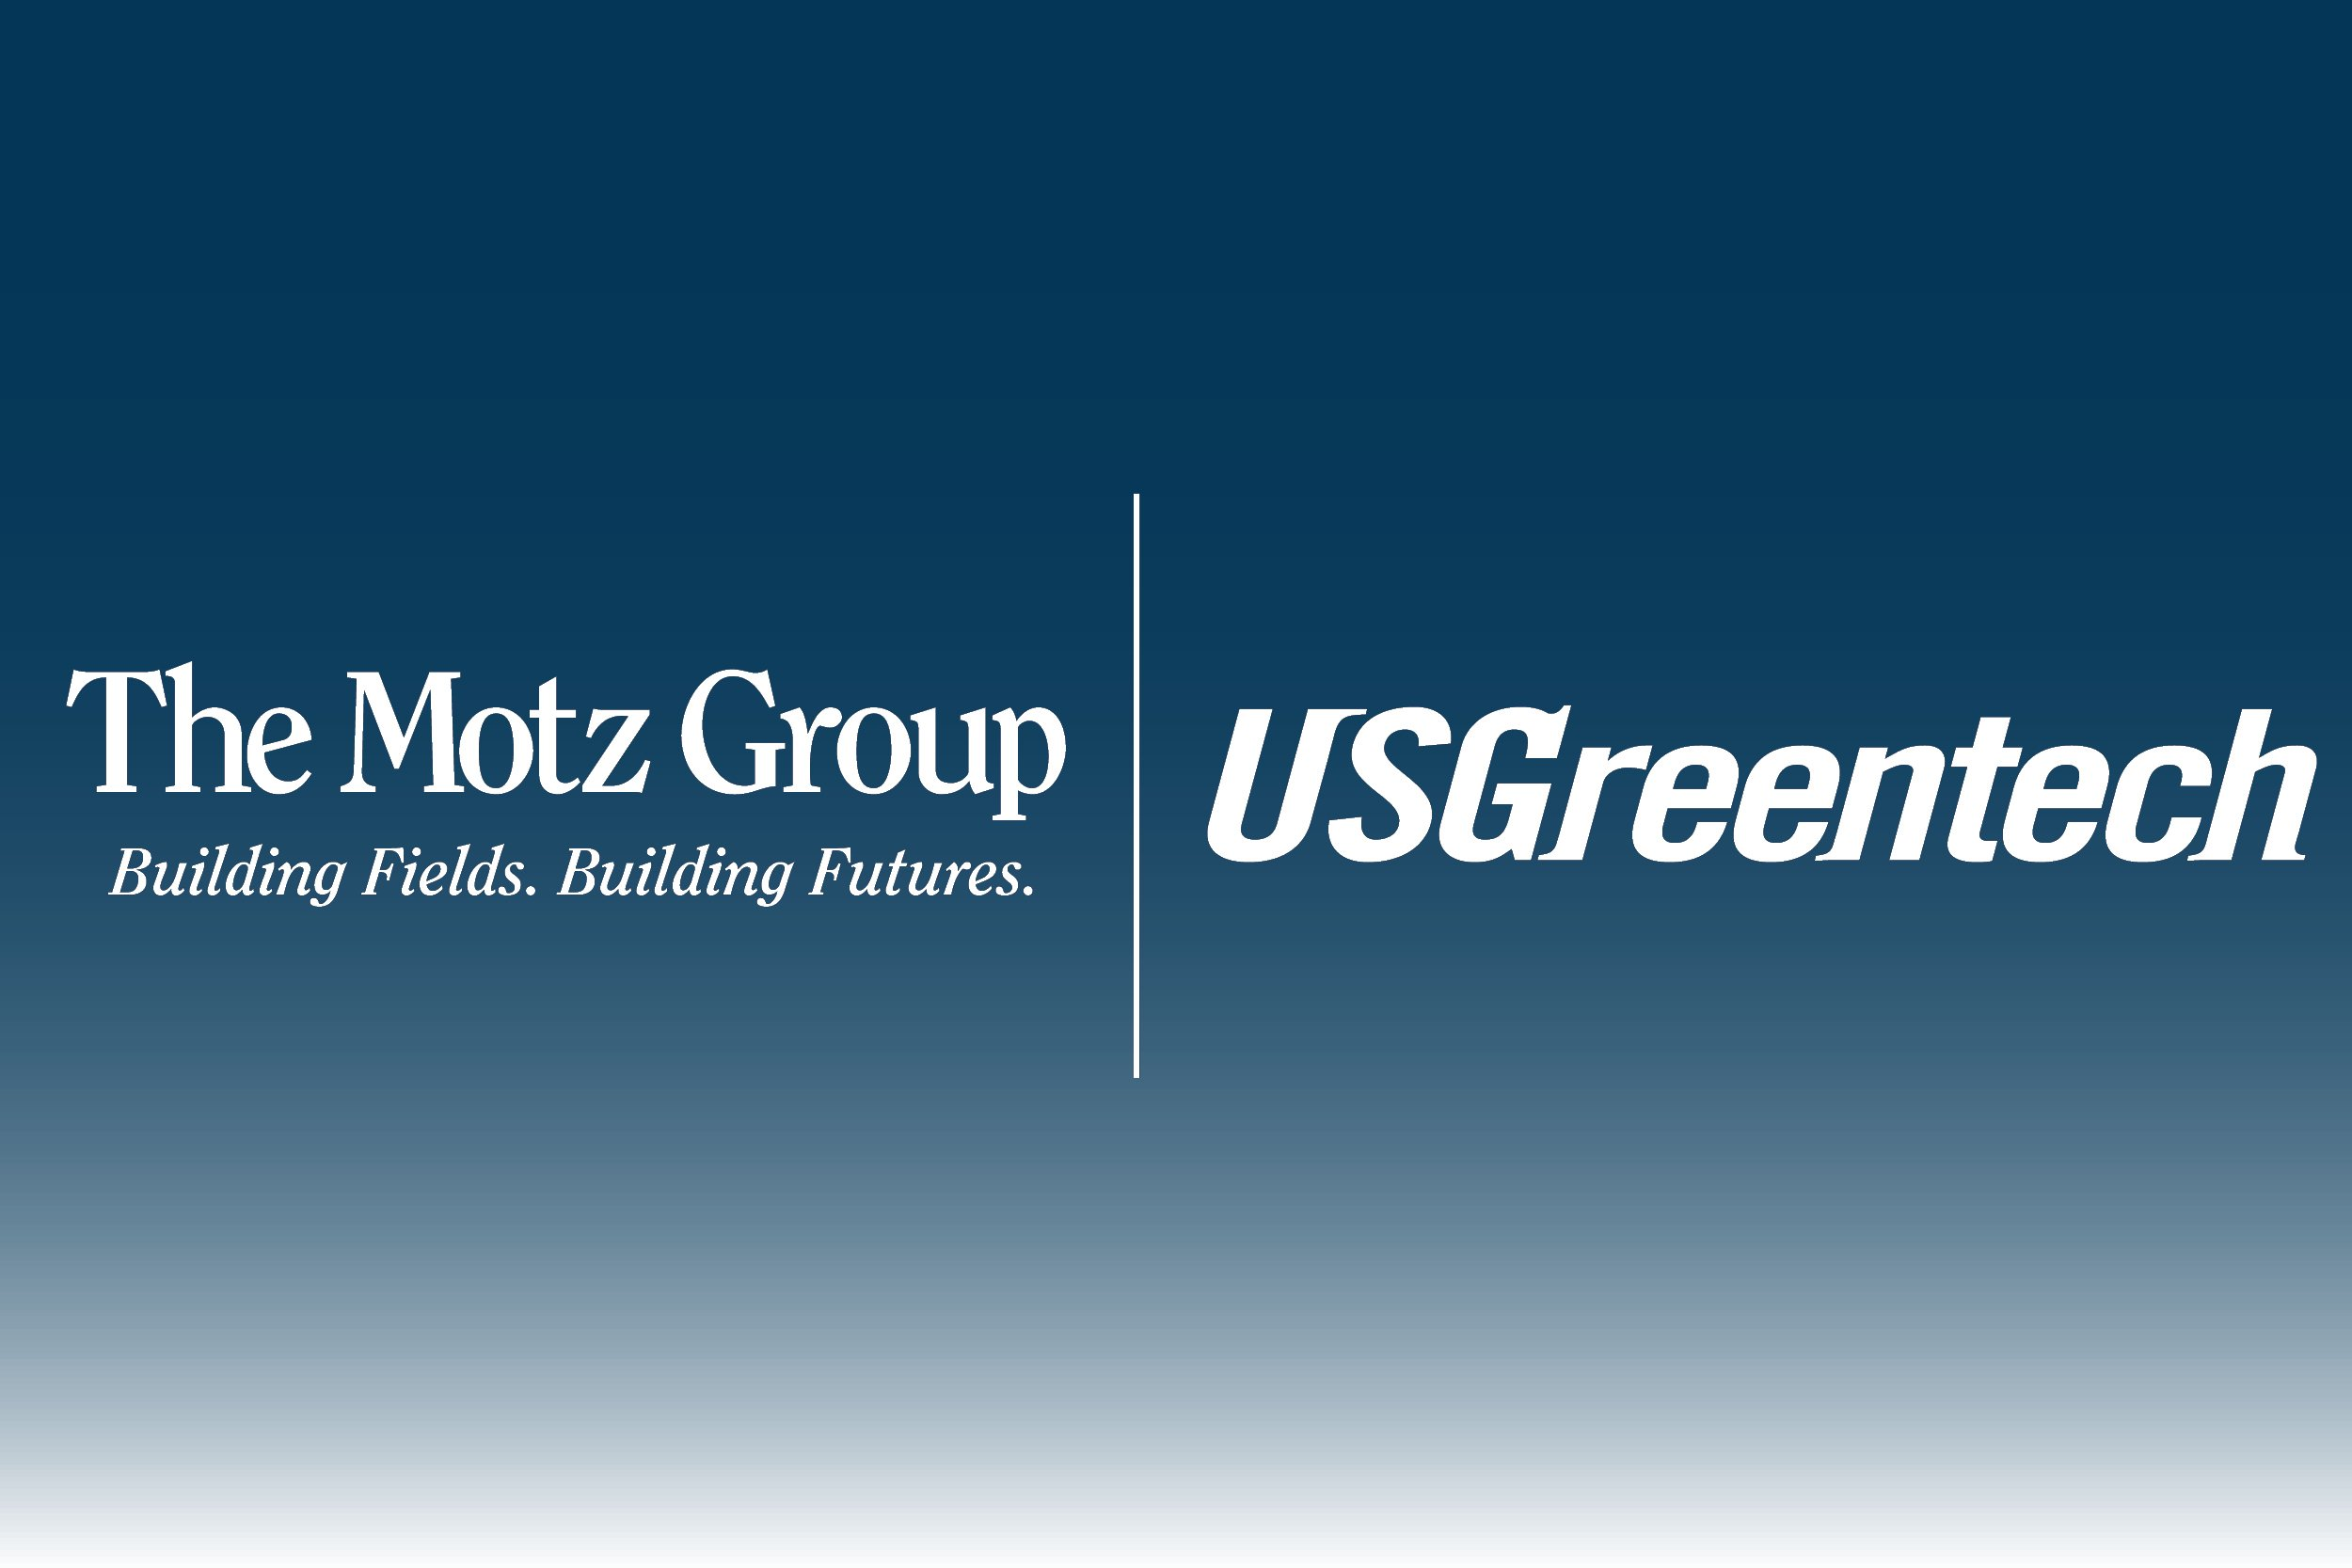 The Motz Group and USGreentech Unite Leadership Teams